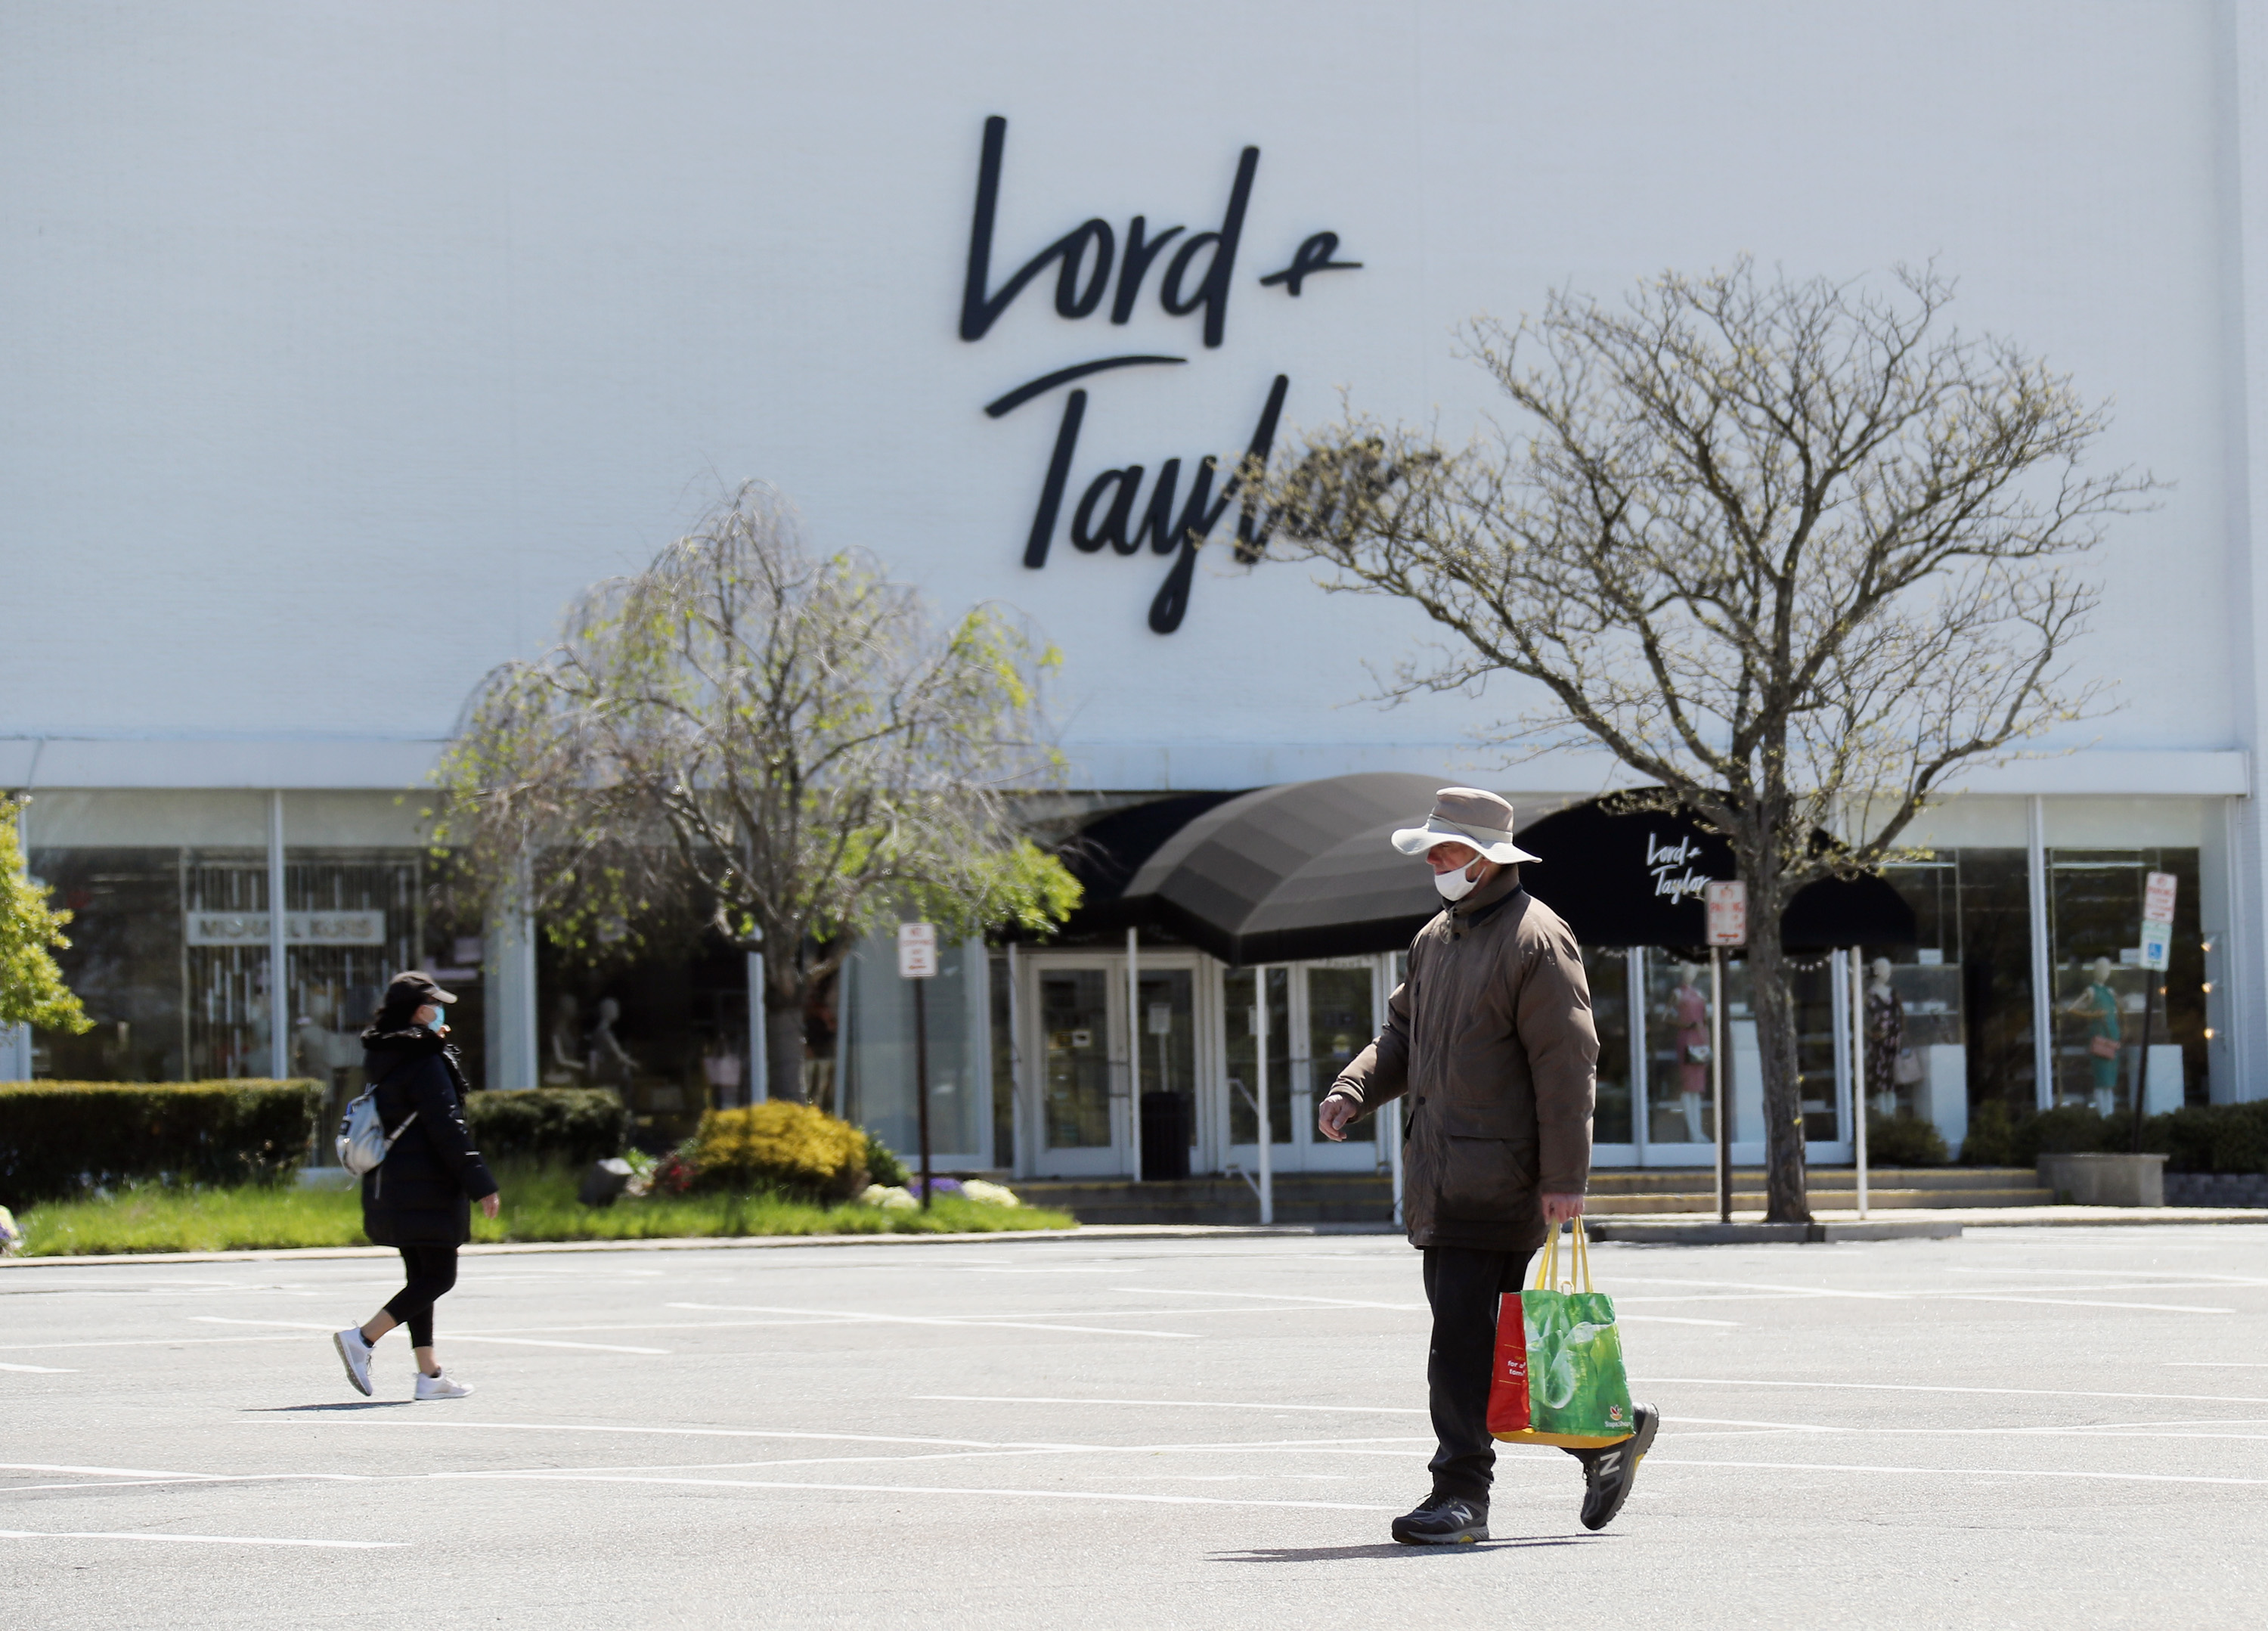 Lord-Taylor-1